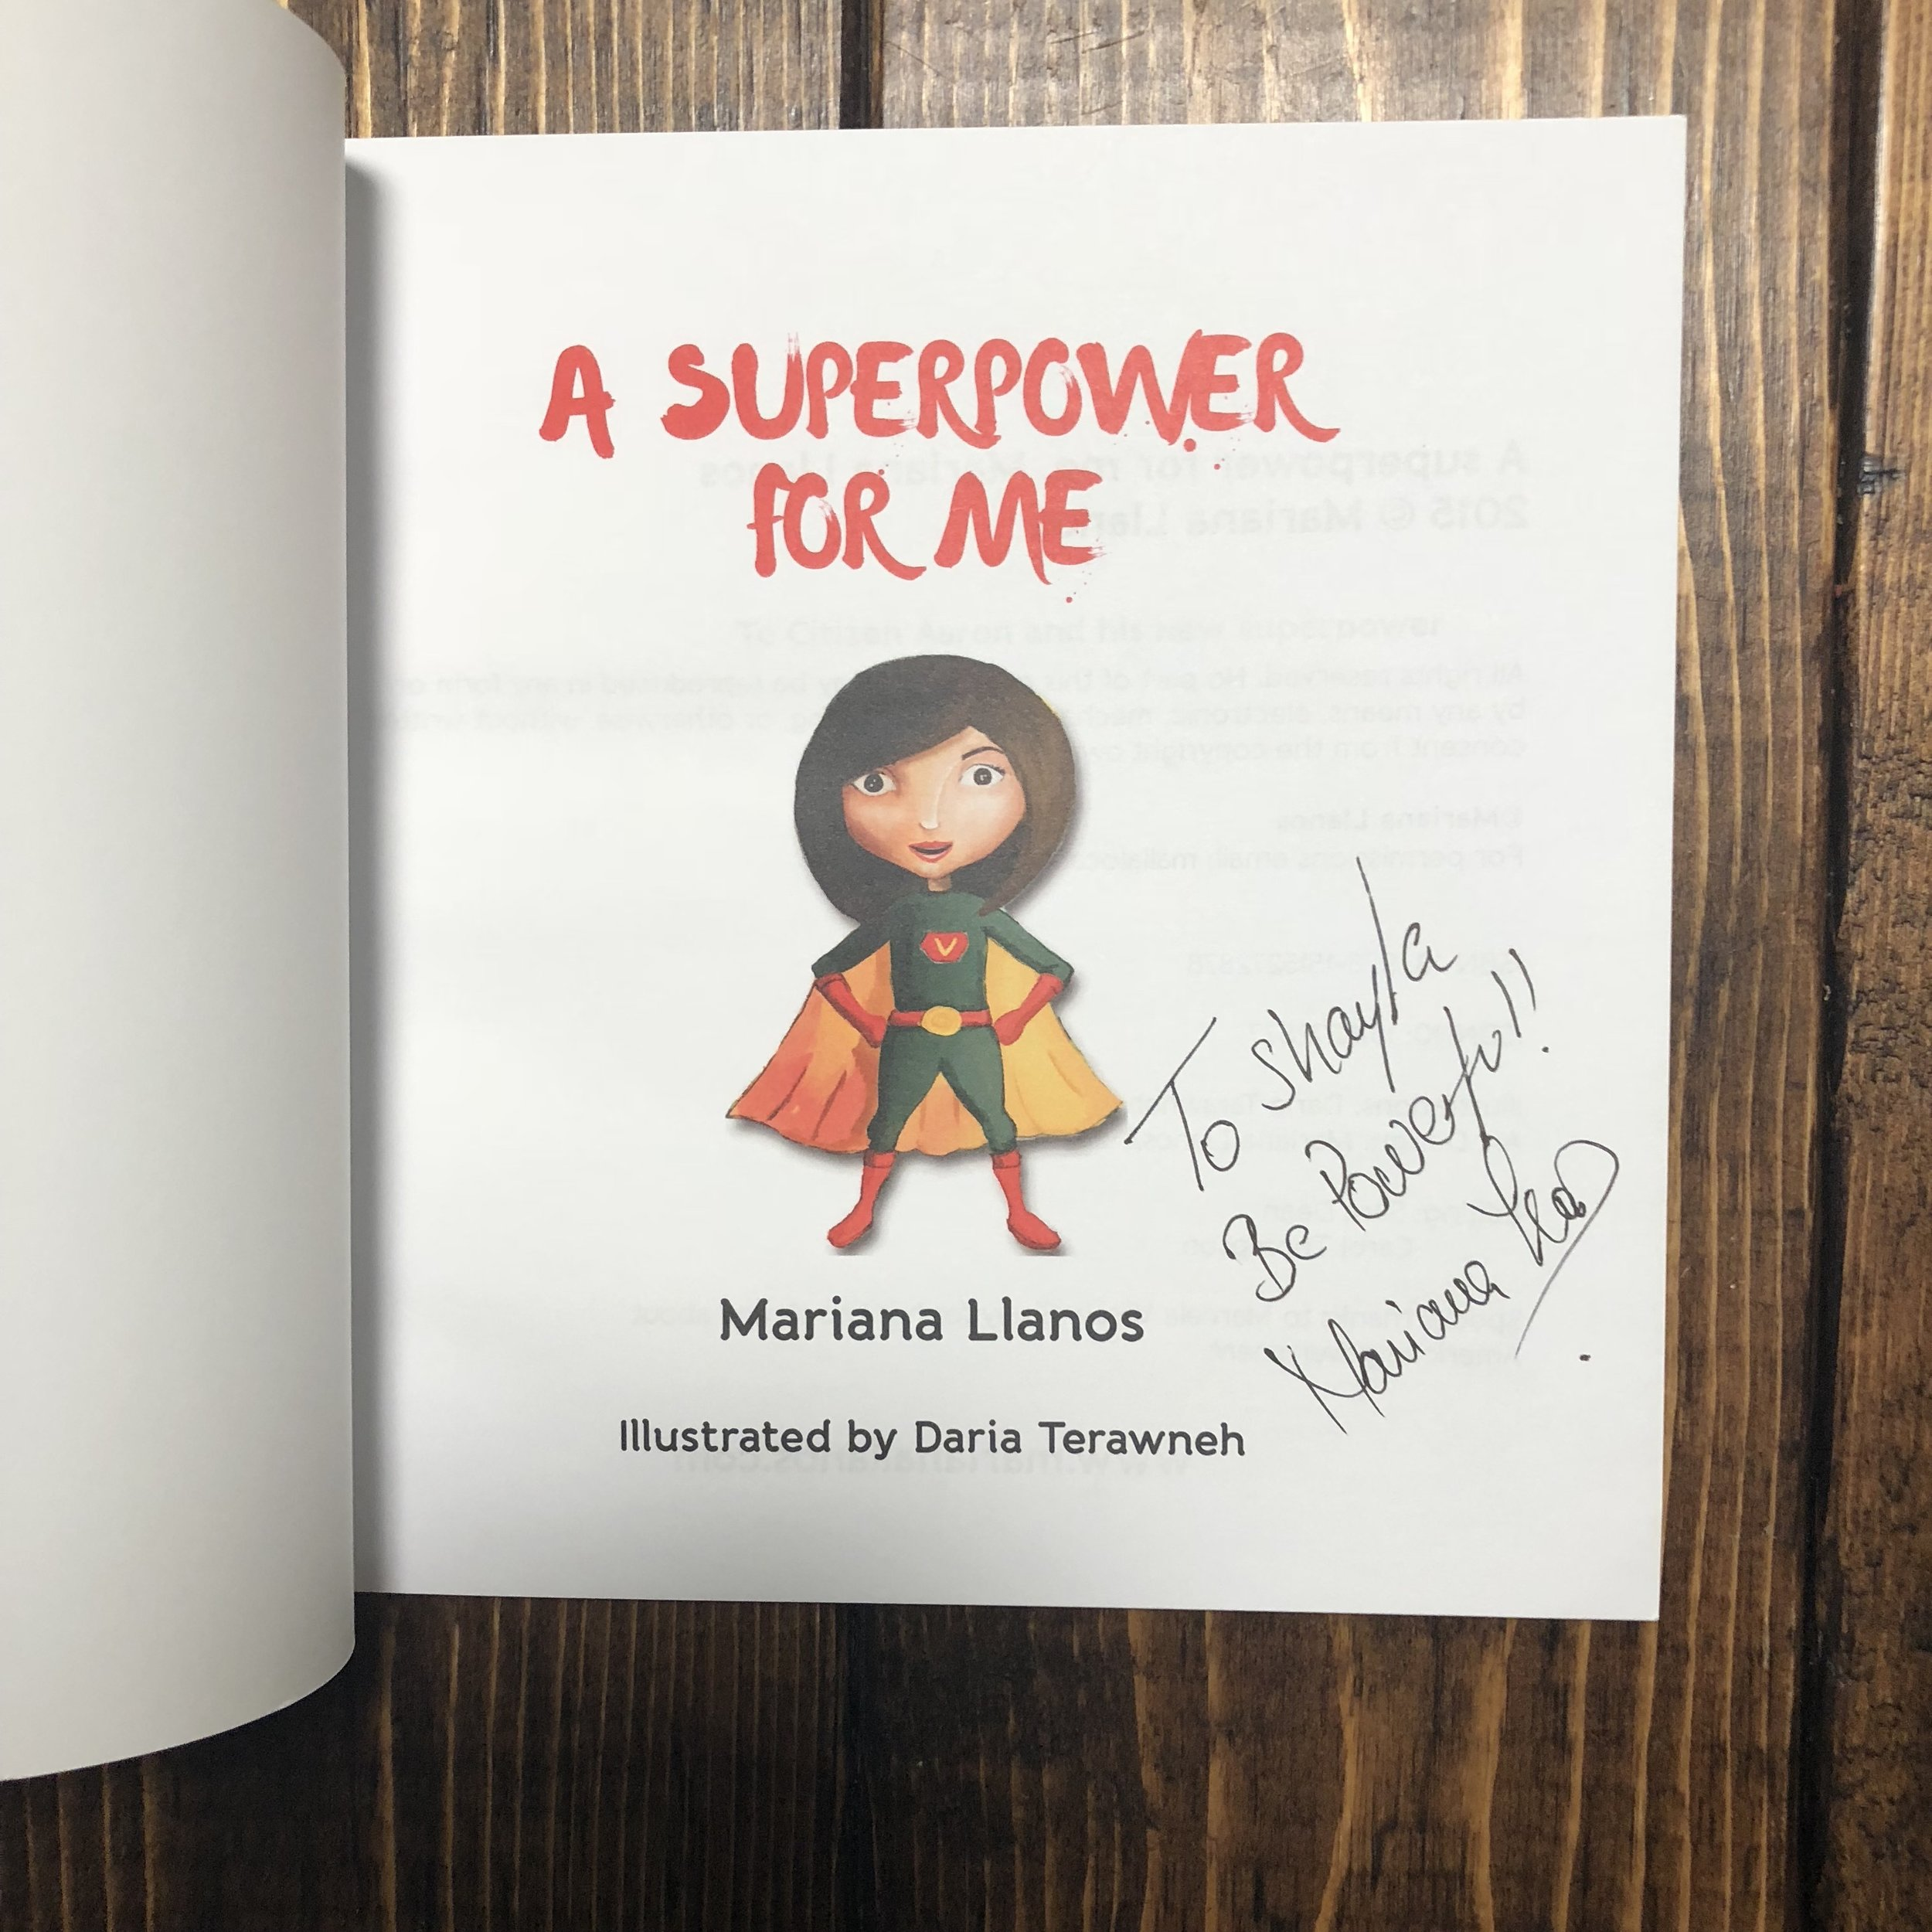 A Superpower for Me by Mariana Llanos